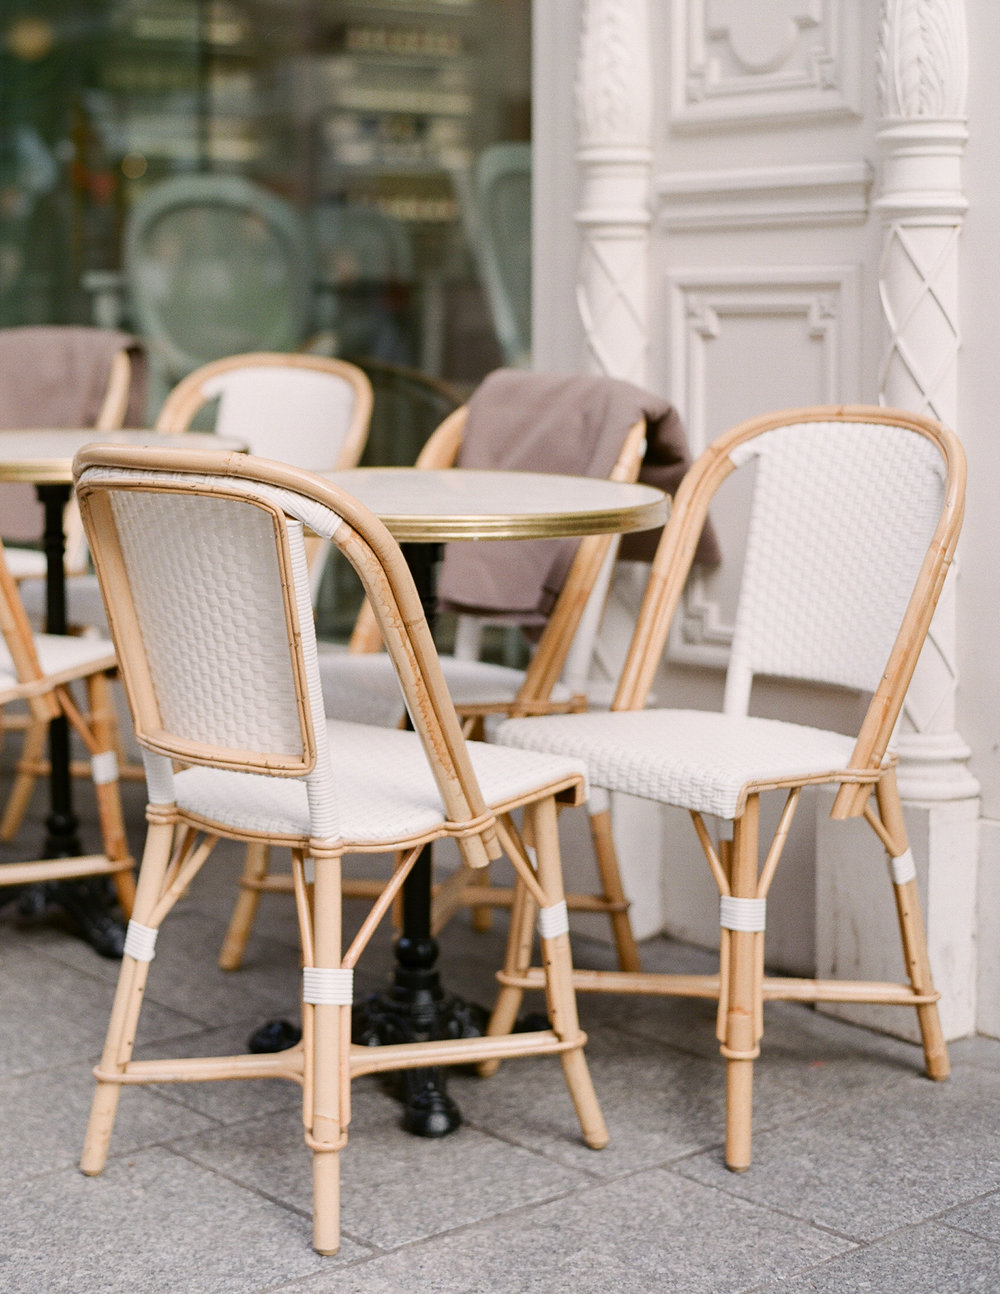 mollycarr-travel-destinationphotography-creativetravel-artists-filmphotography-unearthingtc-frenchbistrochairs-bistro-chairs.jpg